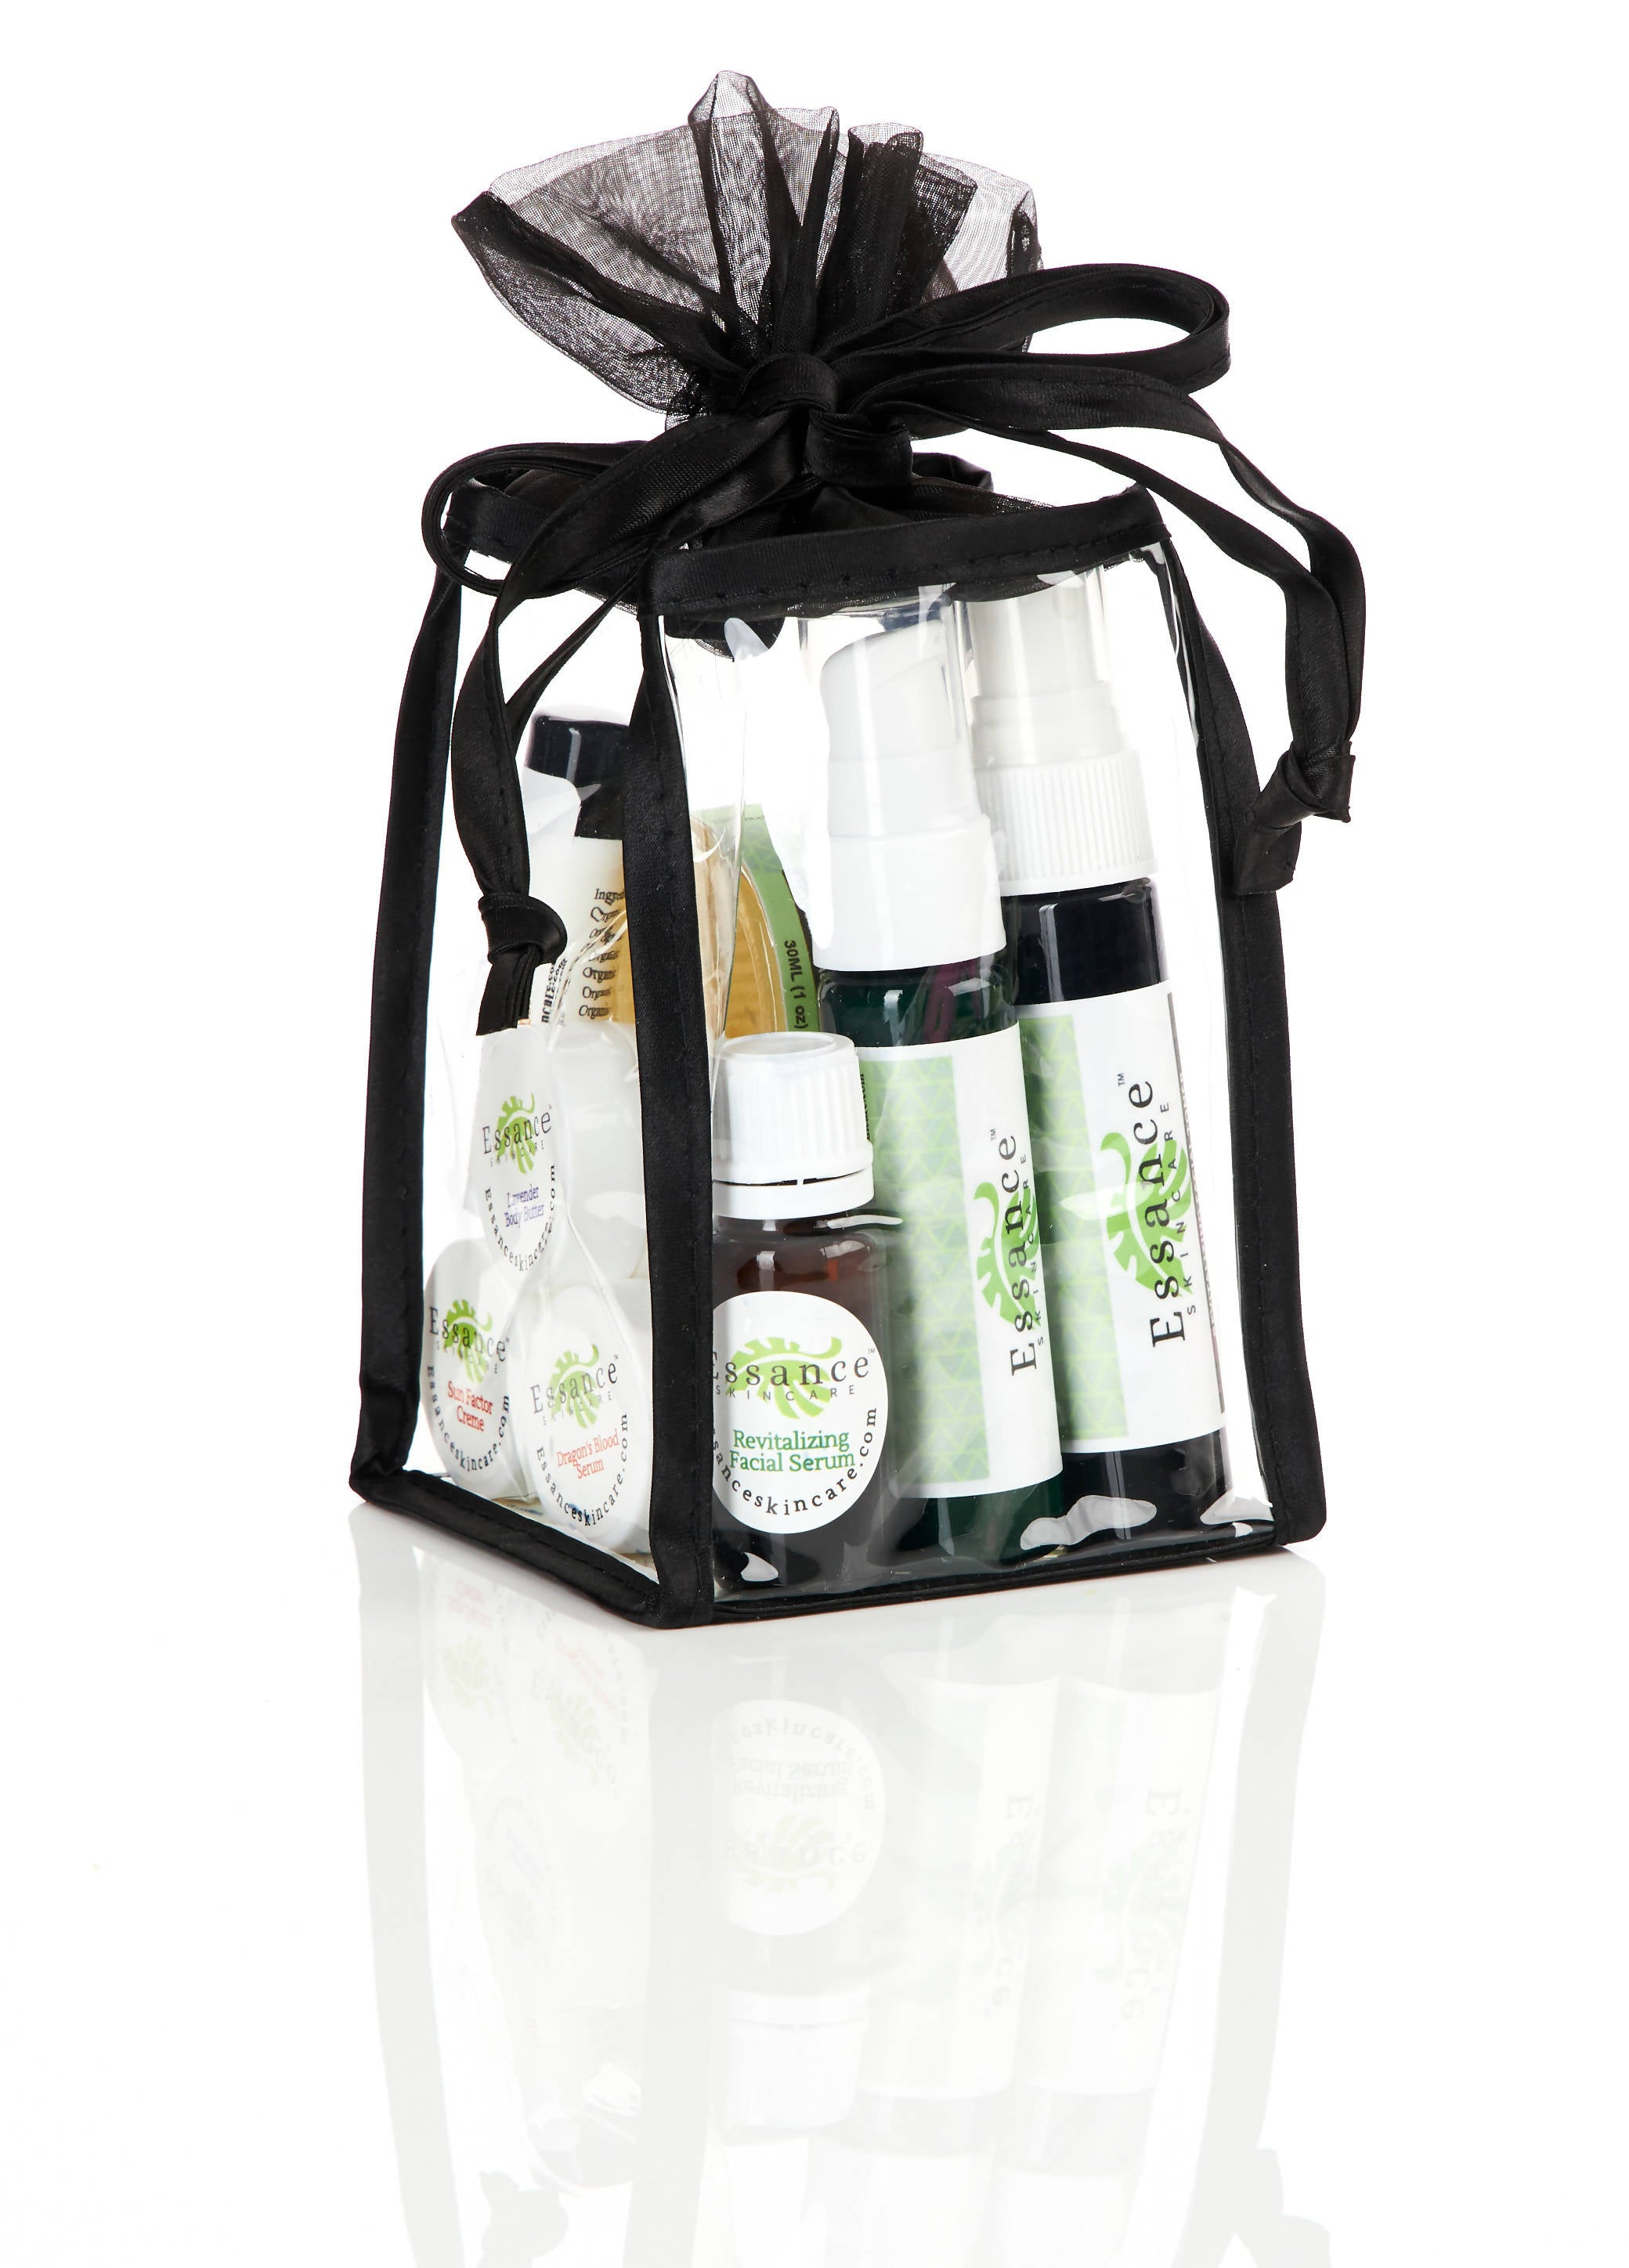 Revitalizing Starter Facial Care Kit